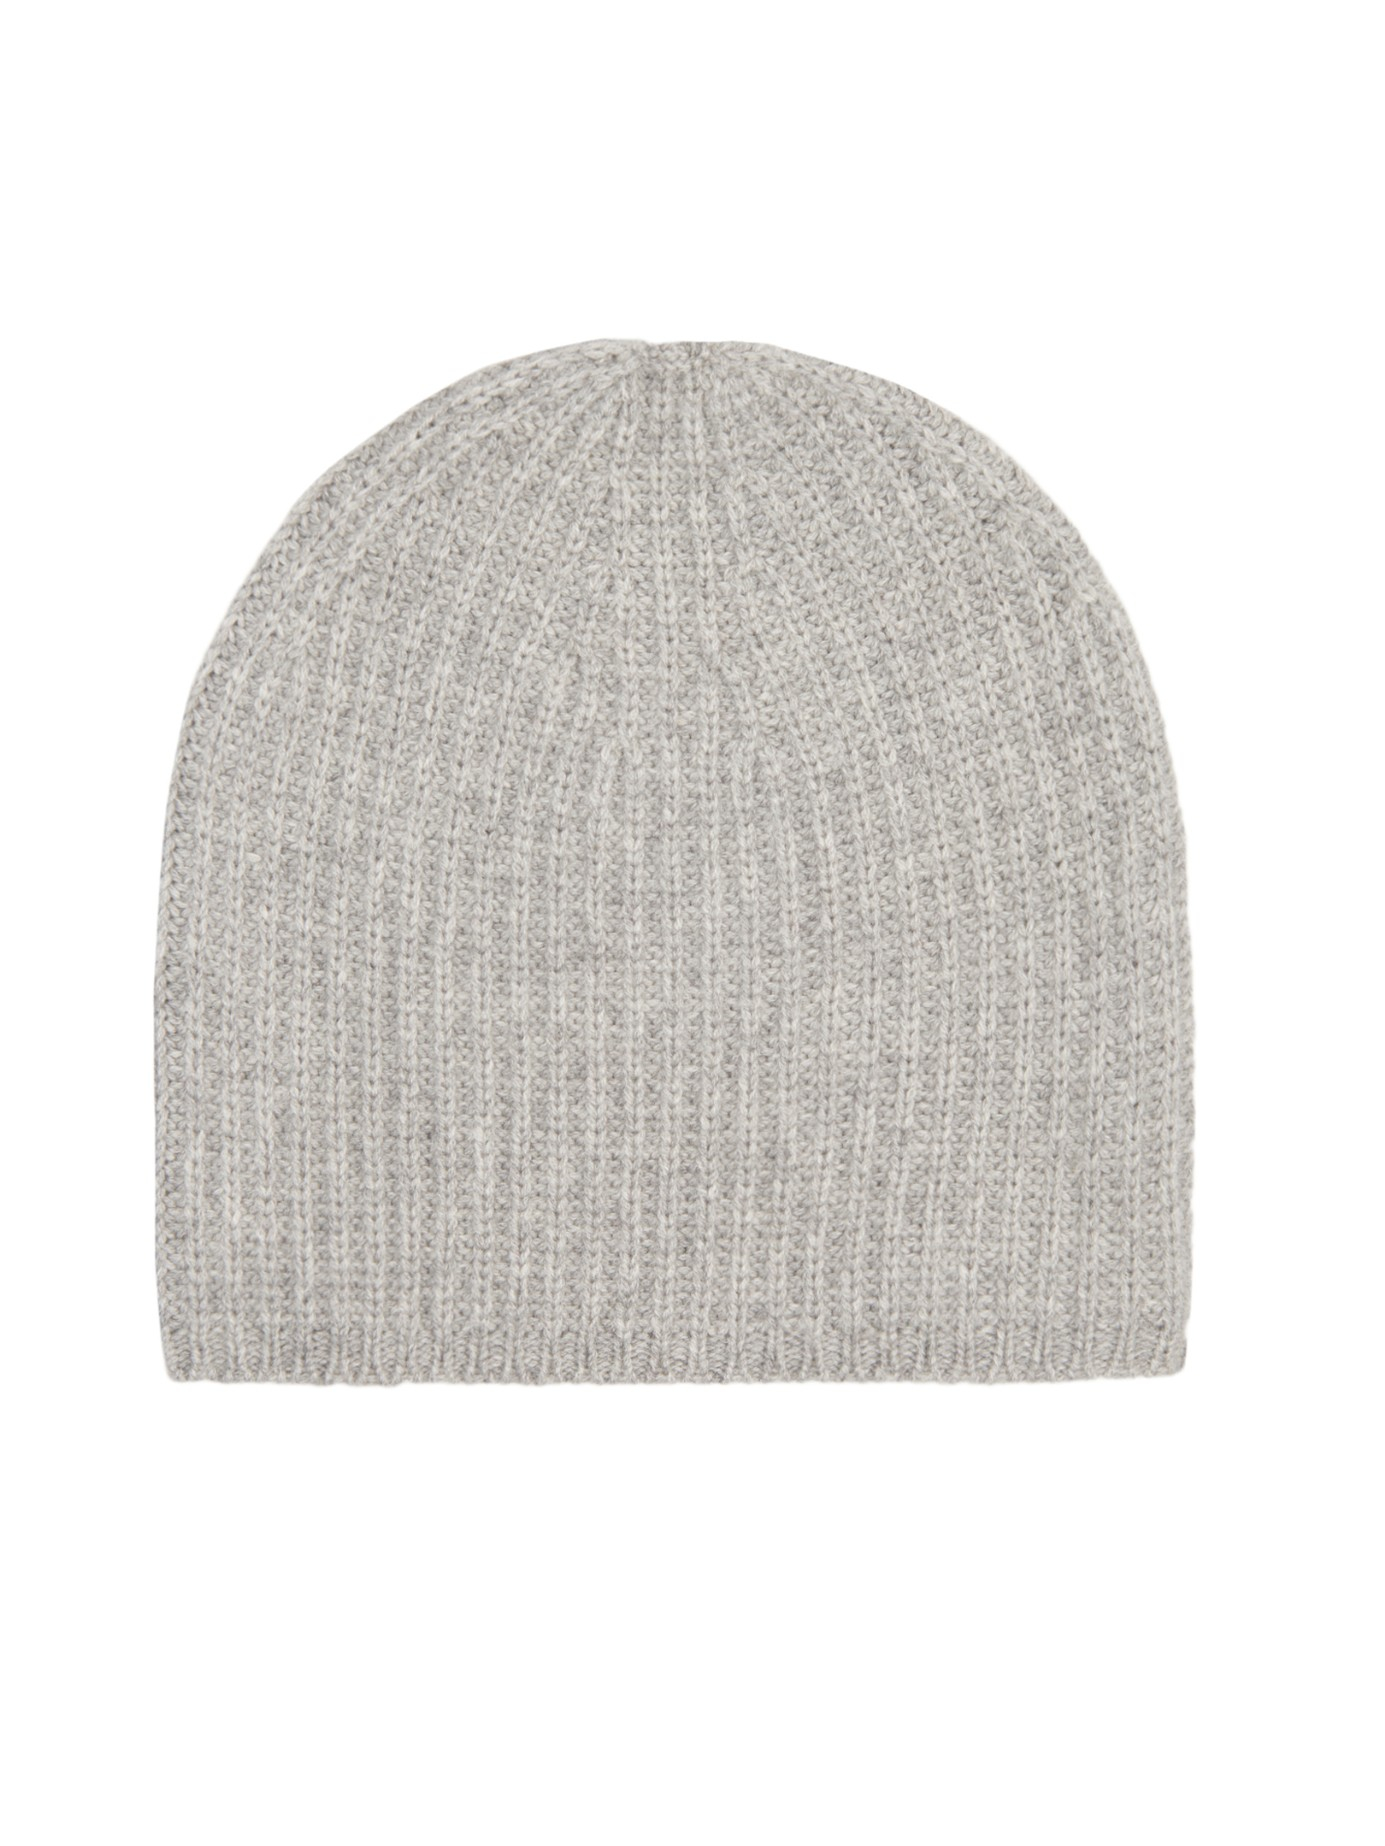 Denis colomb Ribbed-knit Cashmere Beanie Hat in Gray